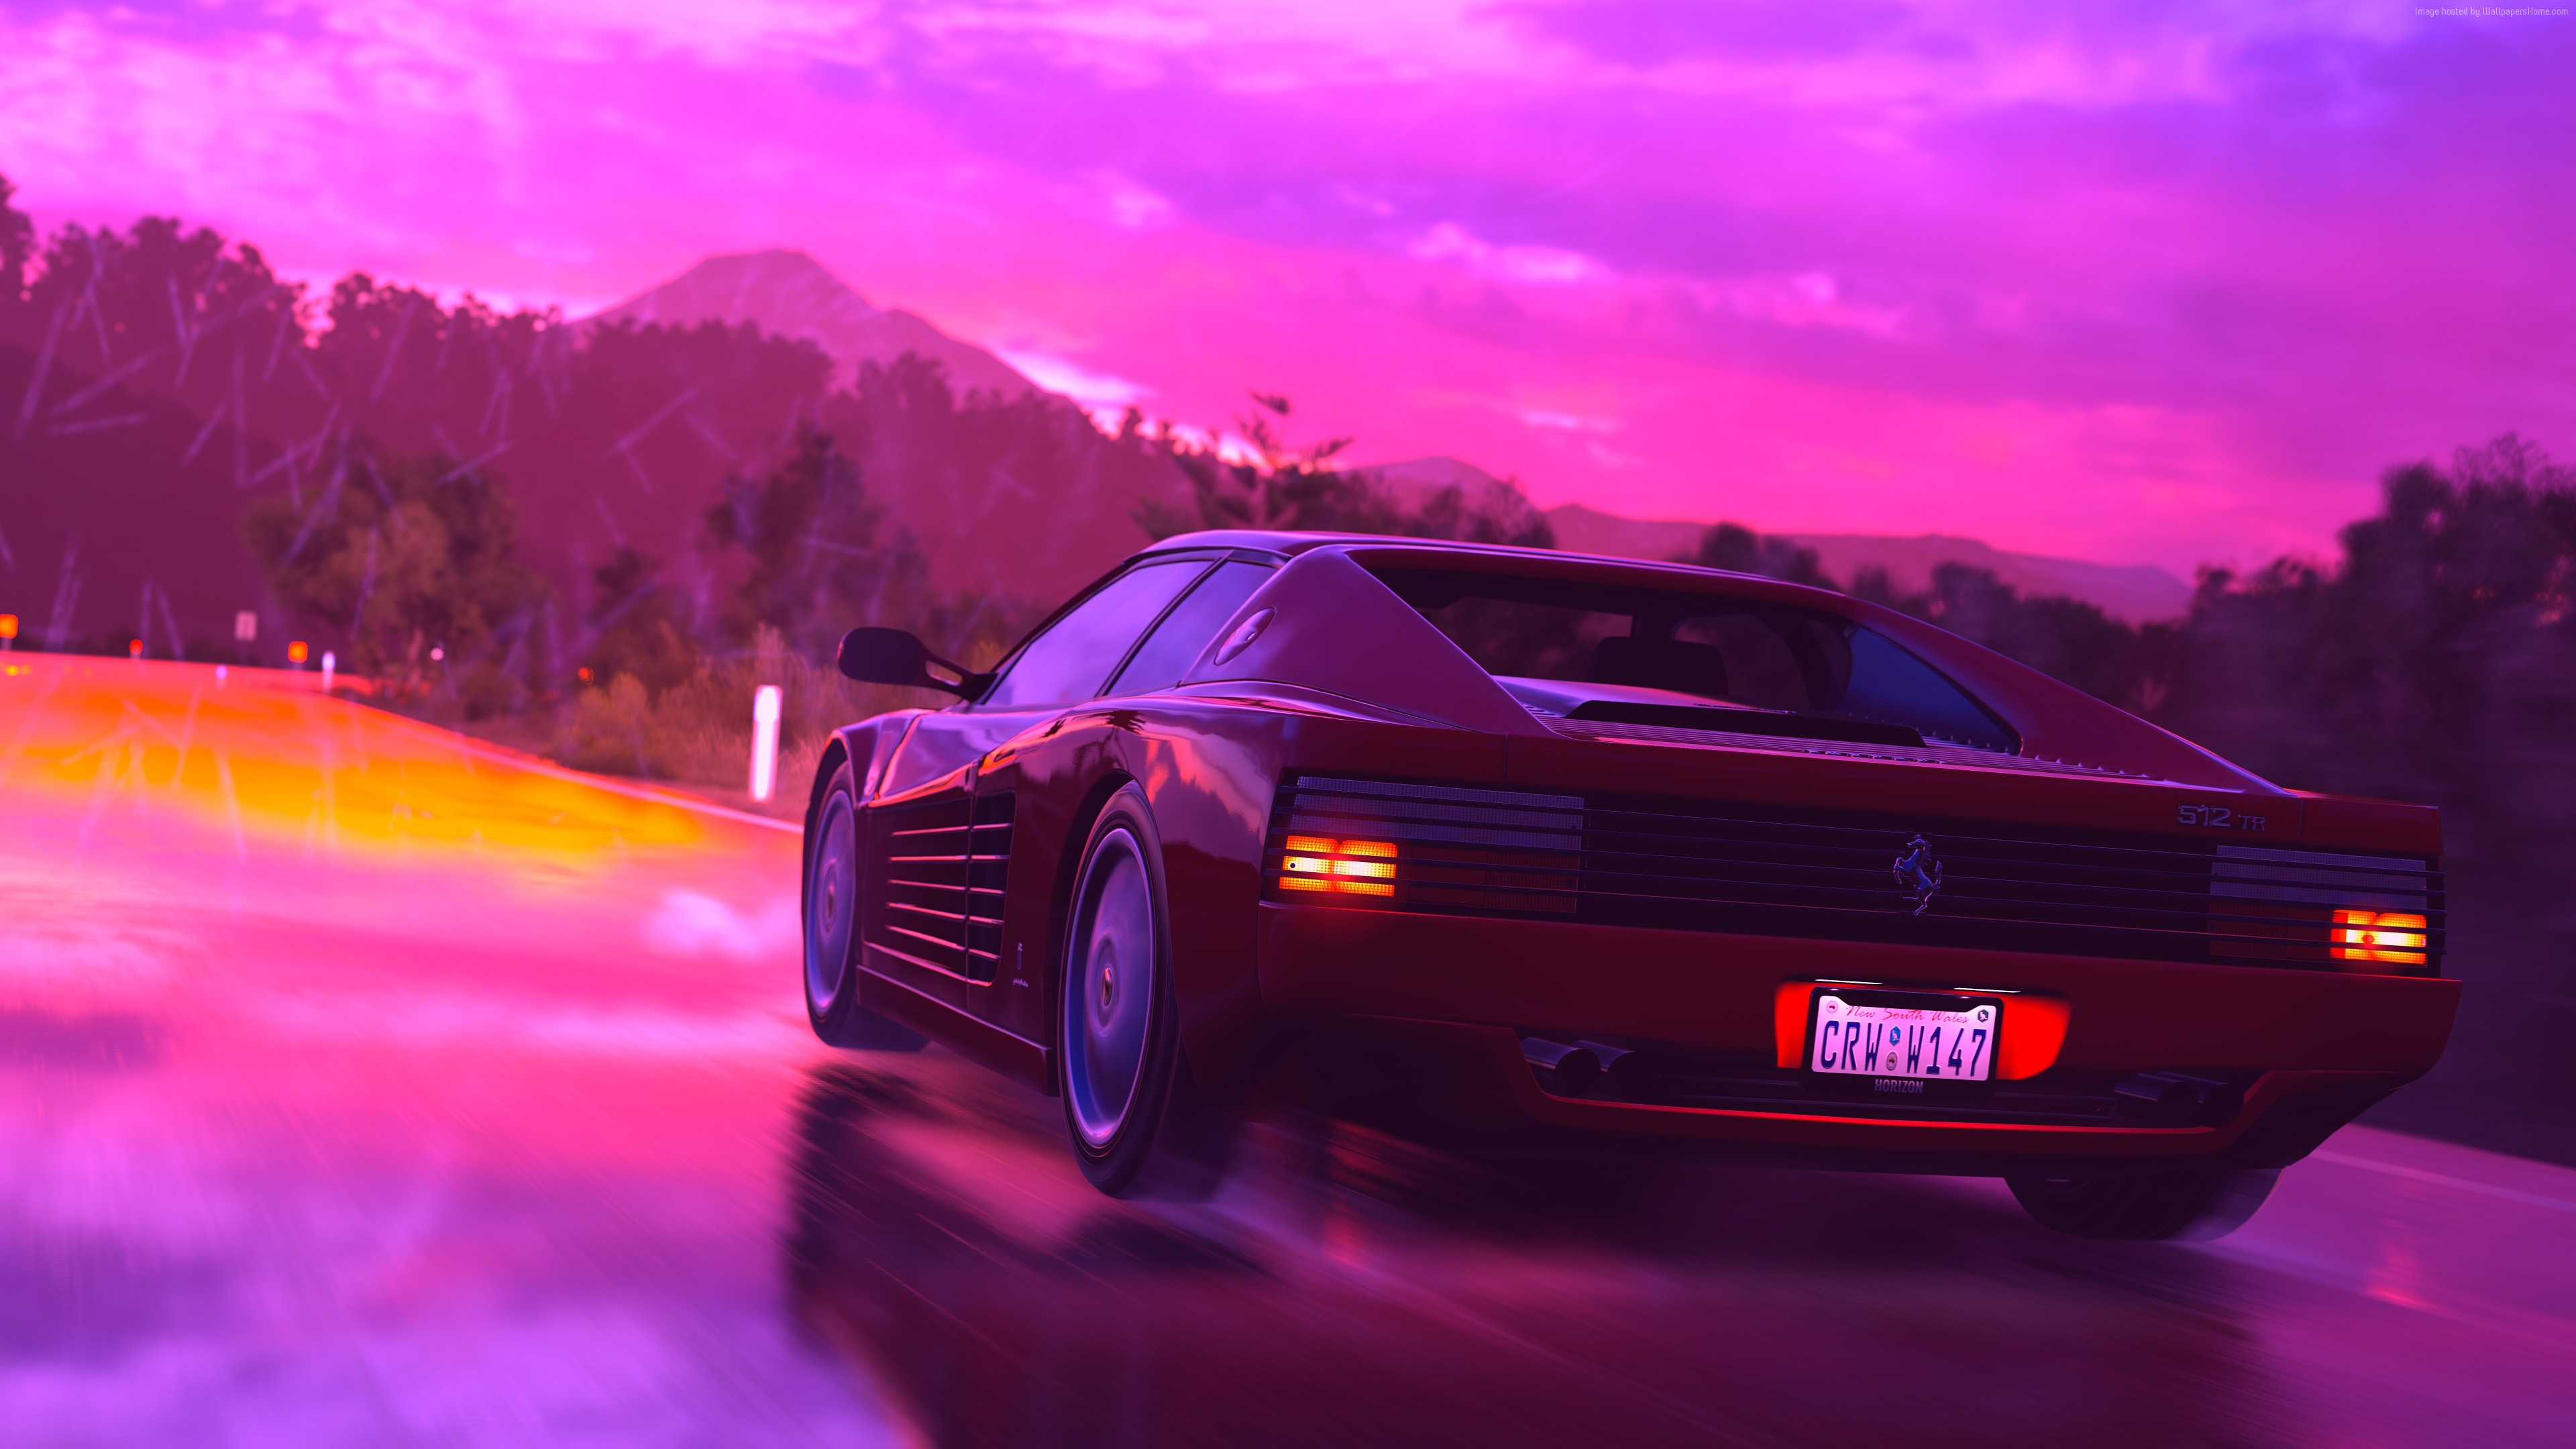 Wallpaper Ferrari Testarossa, retrowave, pink, 4K, Art